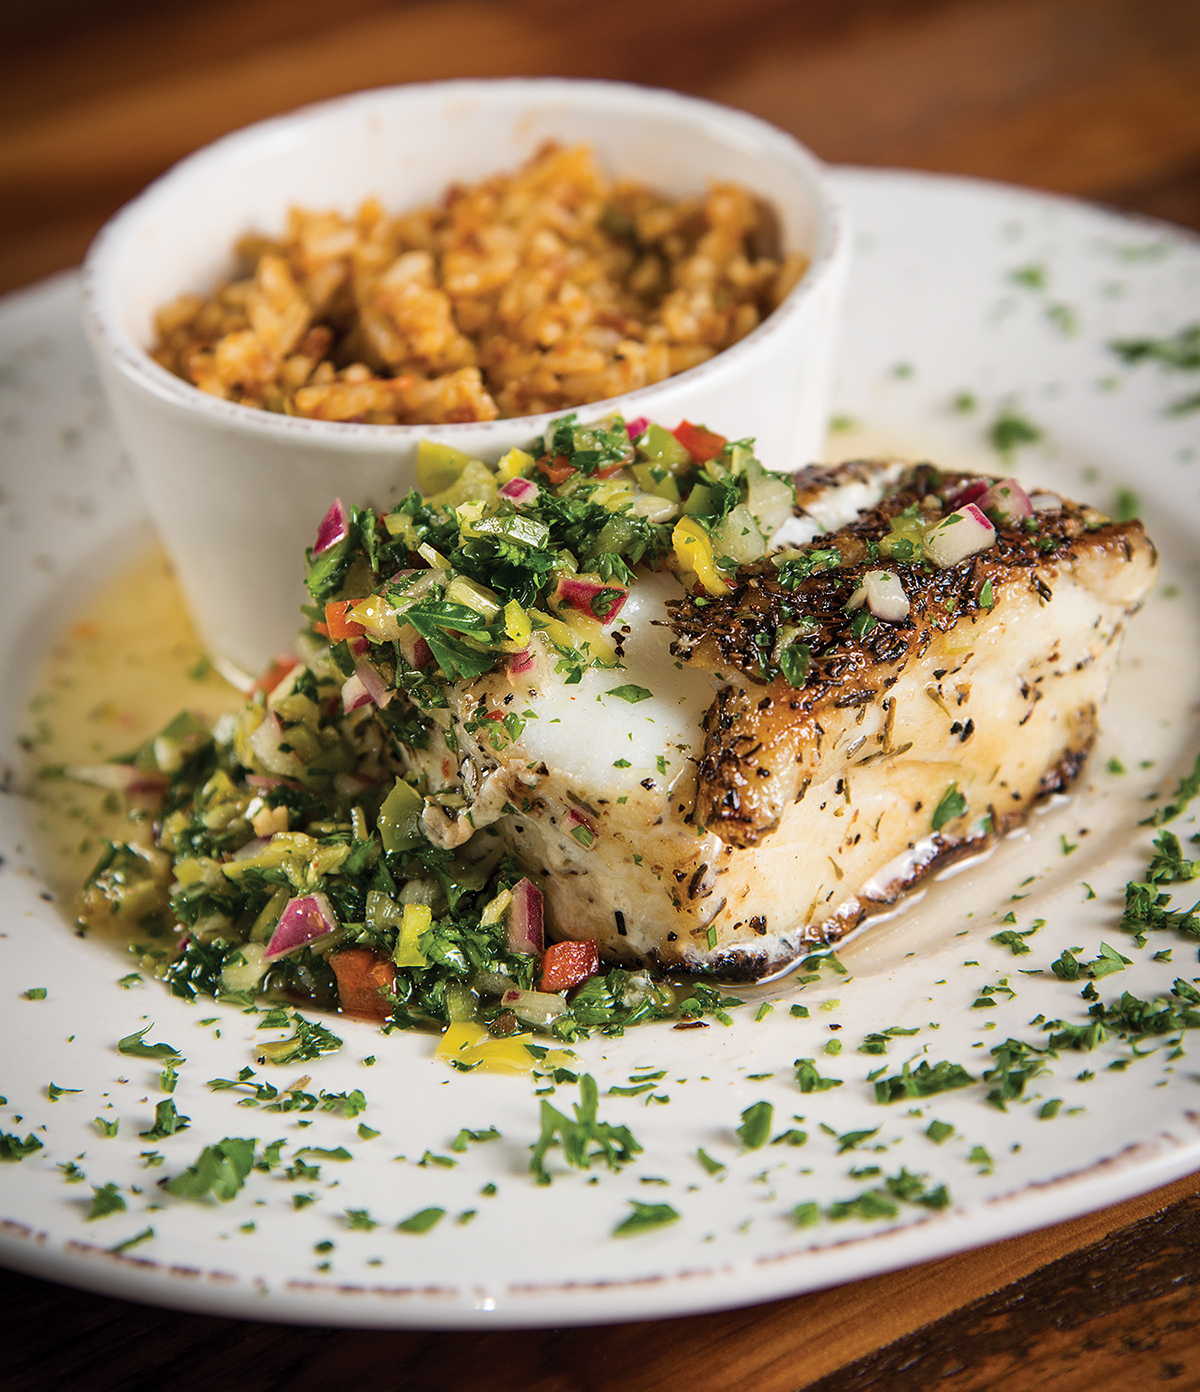 Chilean sea bass with a side of New Orleans dirty rice